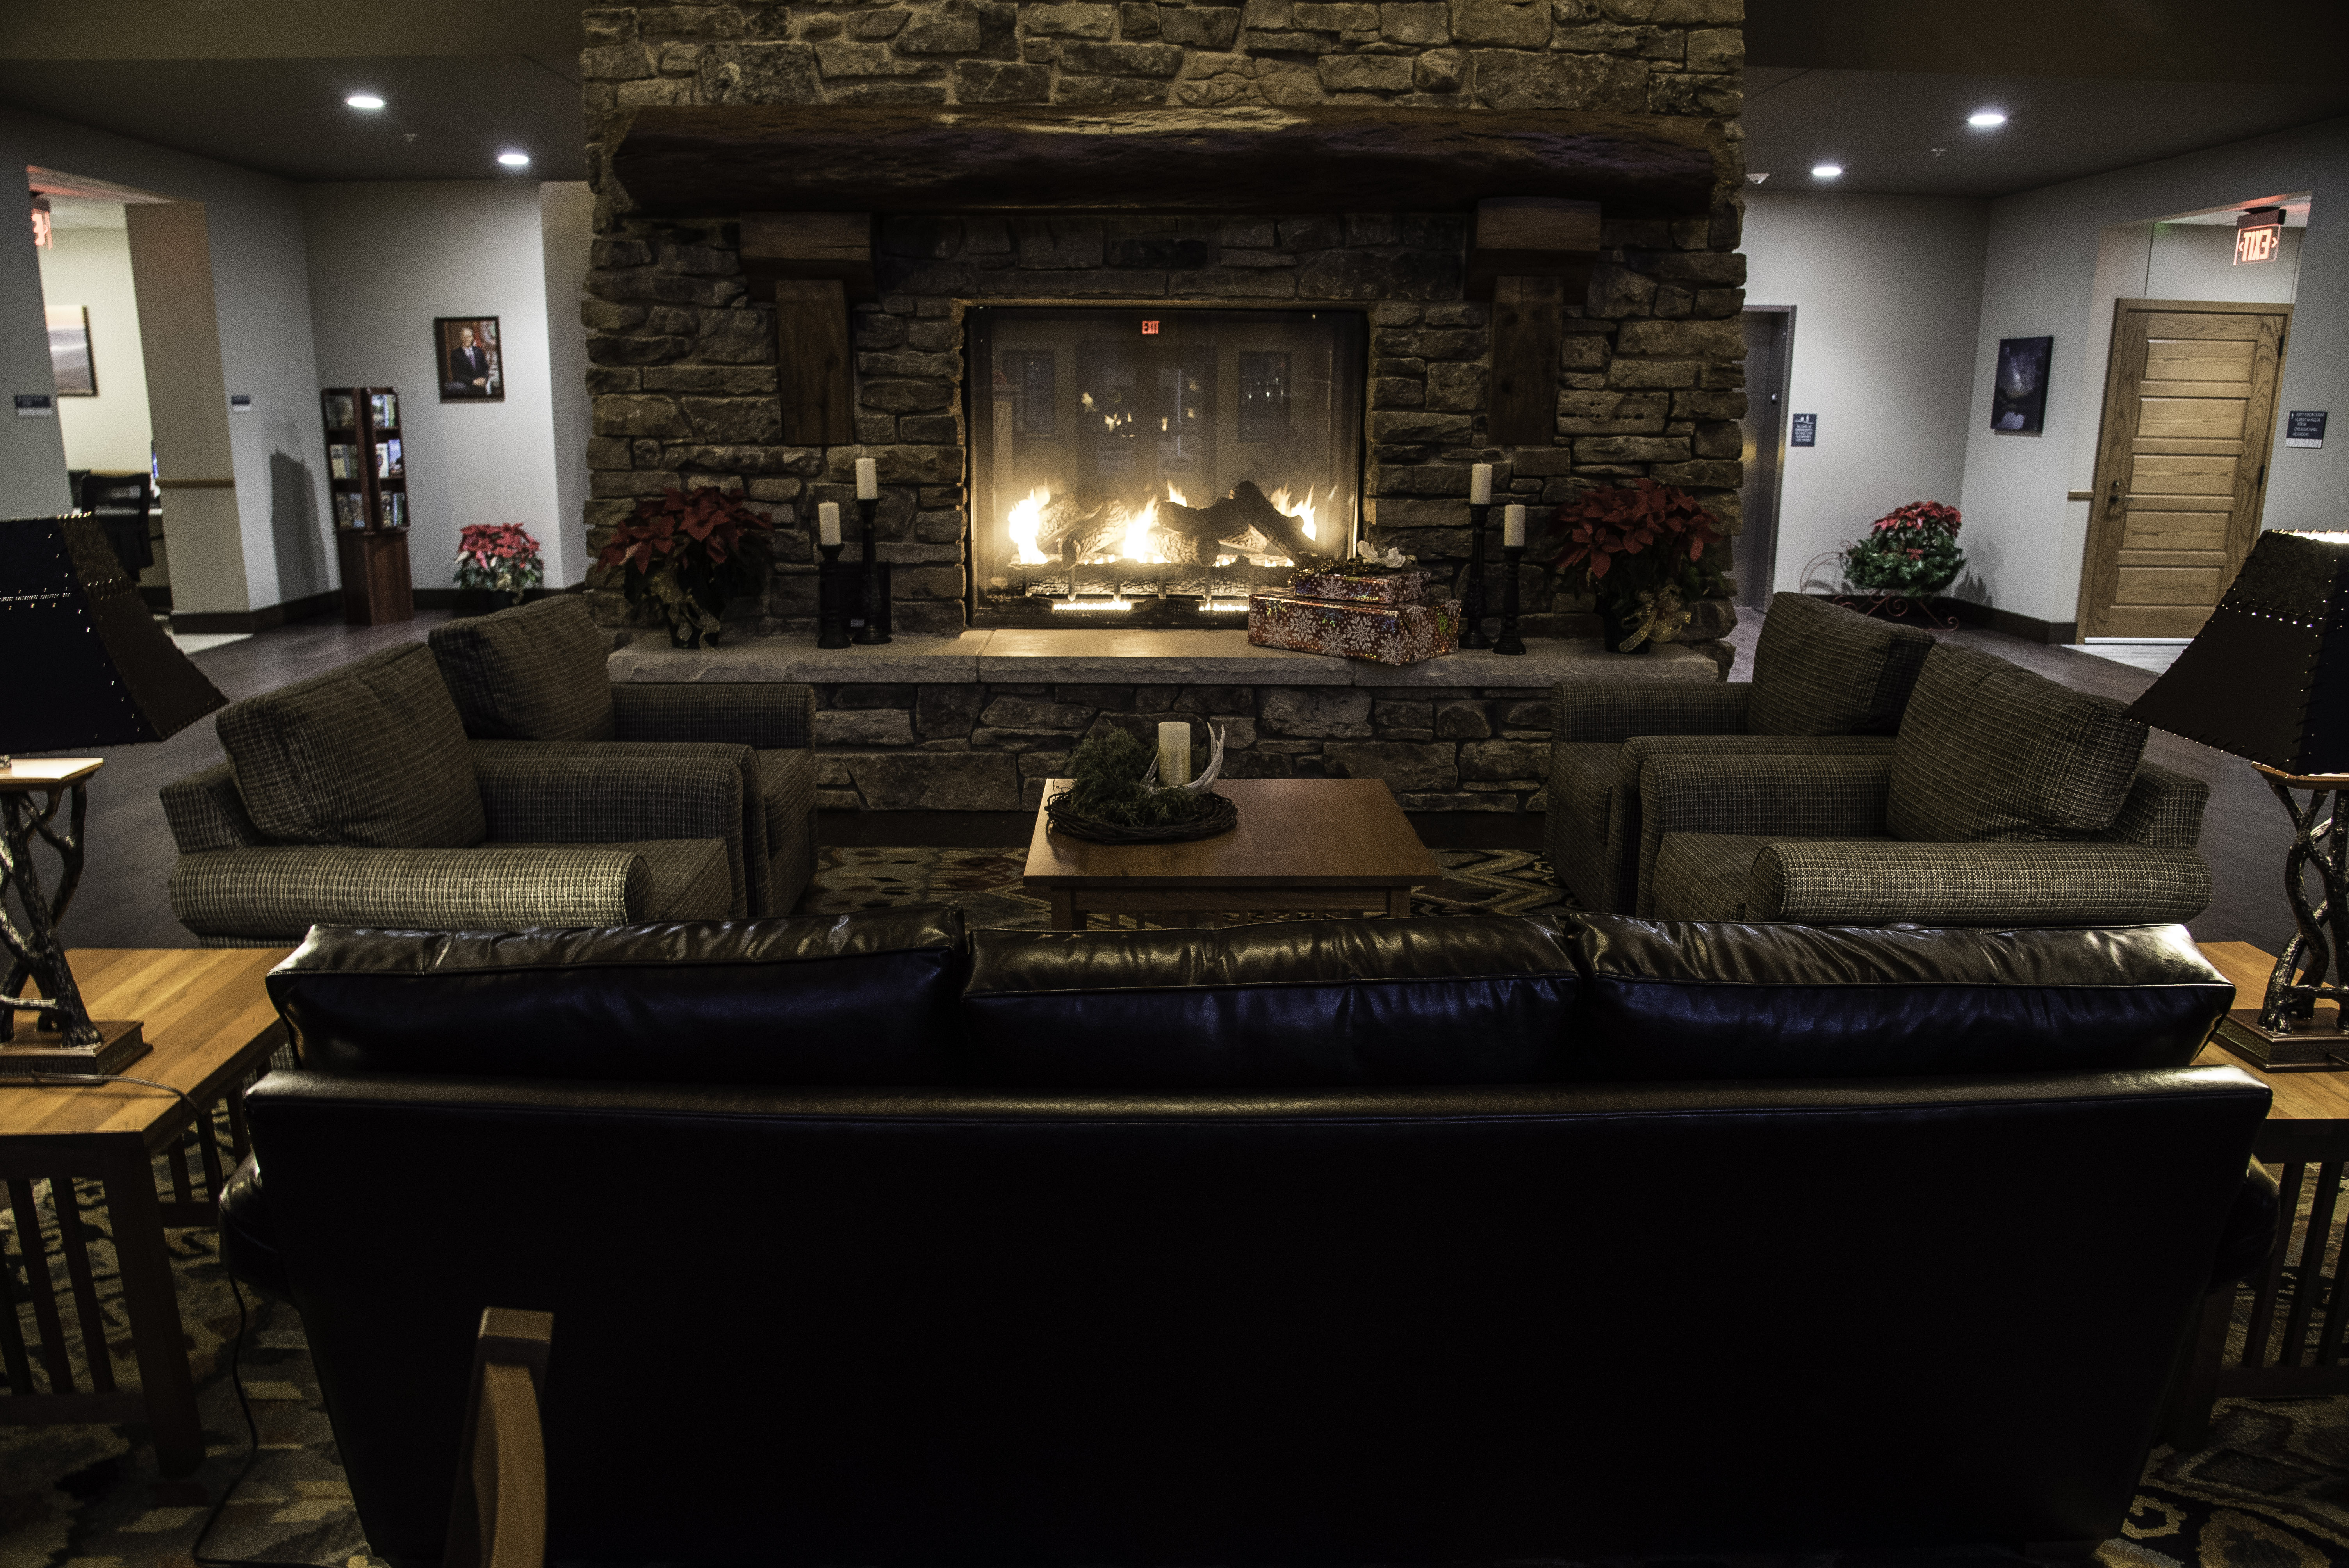 free stock photo of indoors fireplace at the betty lea lodge at